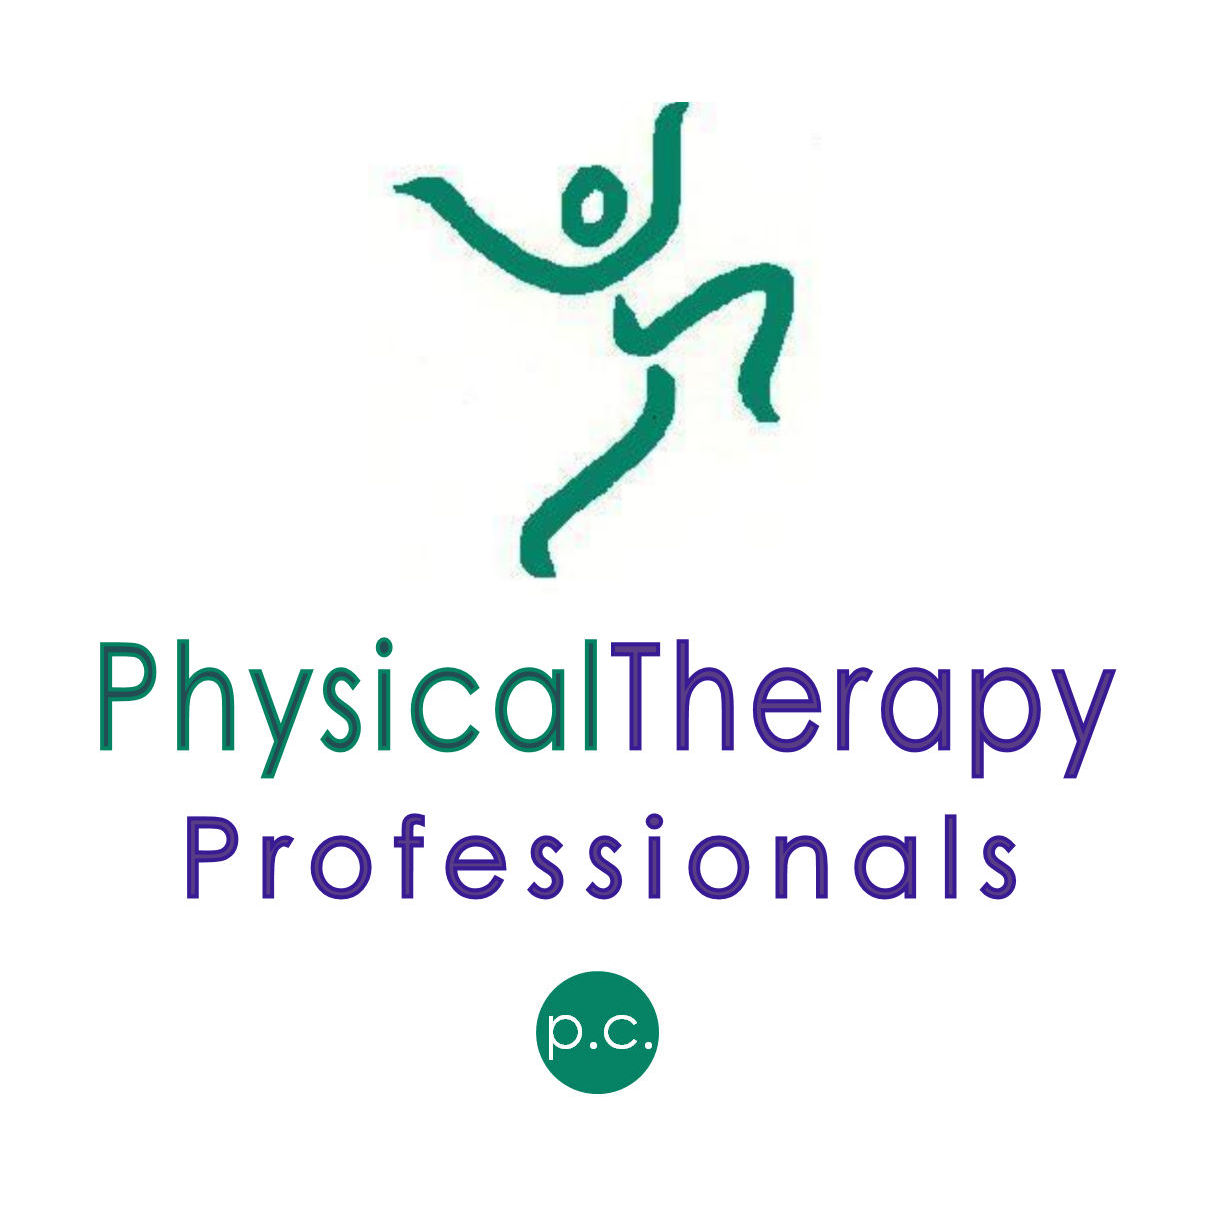 Physical Therapy Professionals PC - Chesterfield, MI - Physical Therapy & Rehab